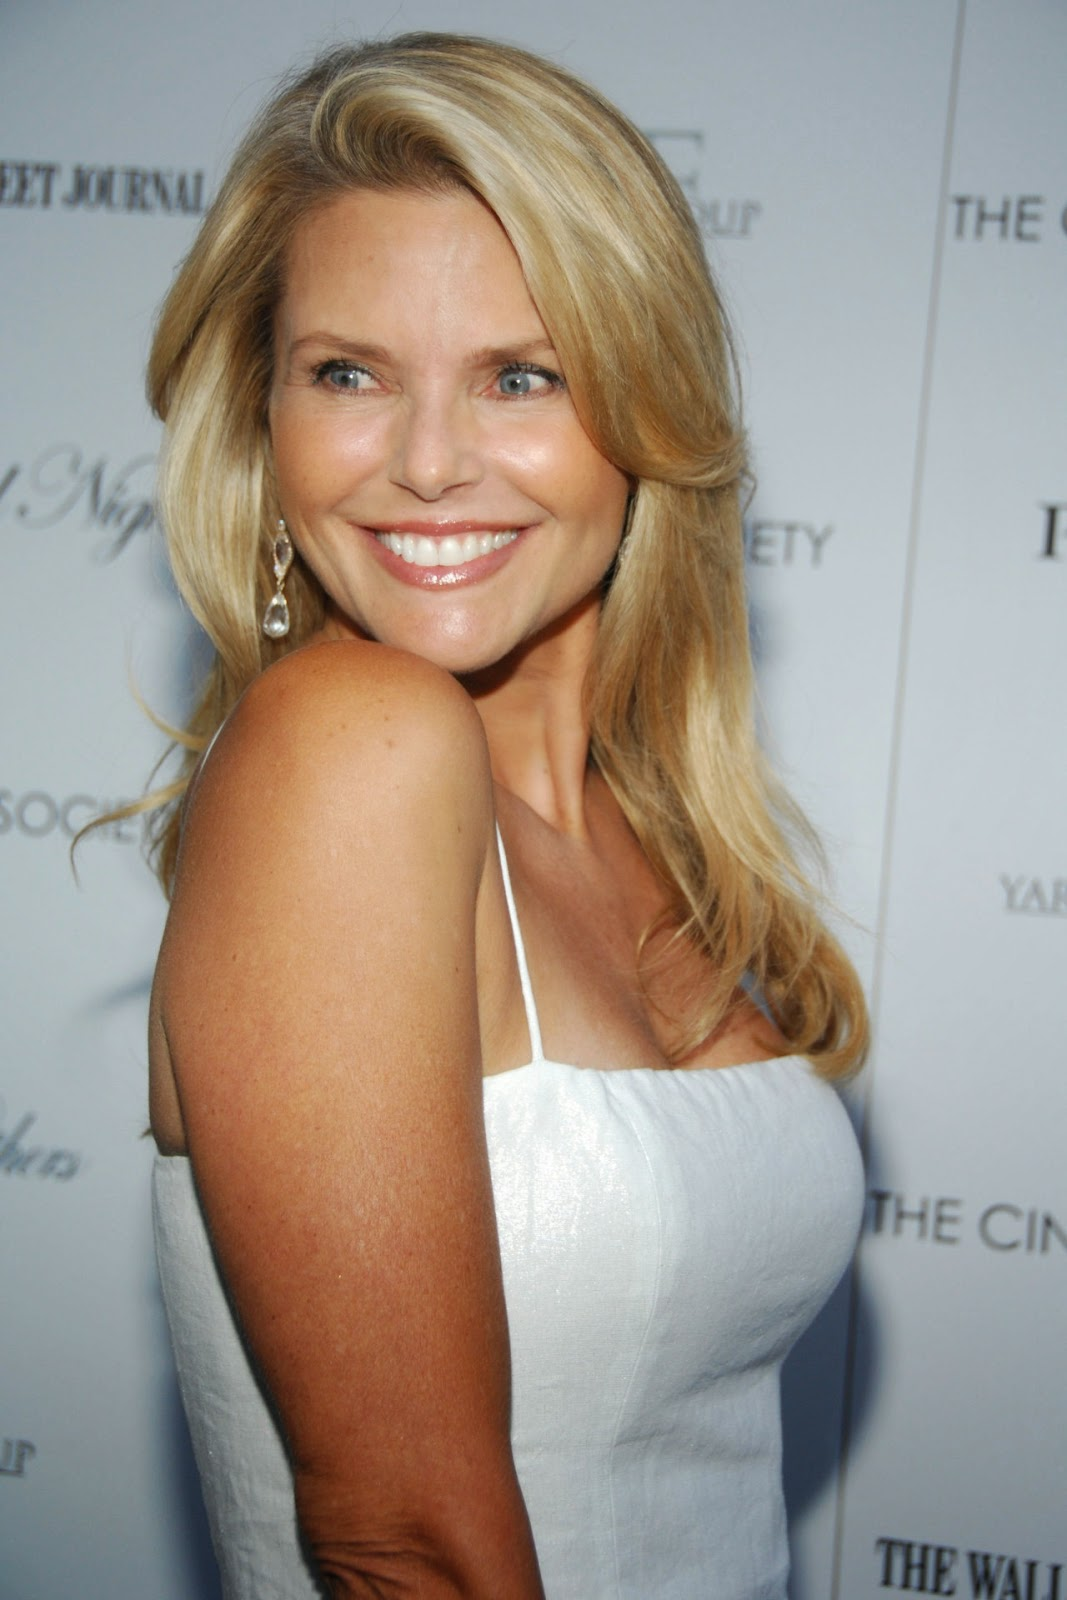 Christie Brinkley Hd Wallpapers Free Download